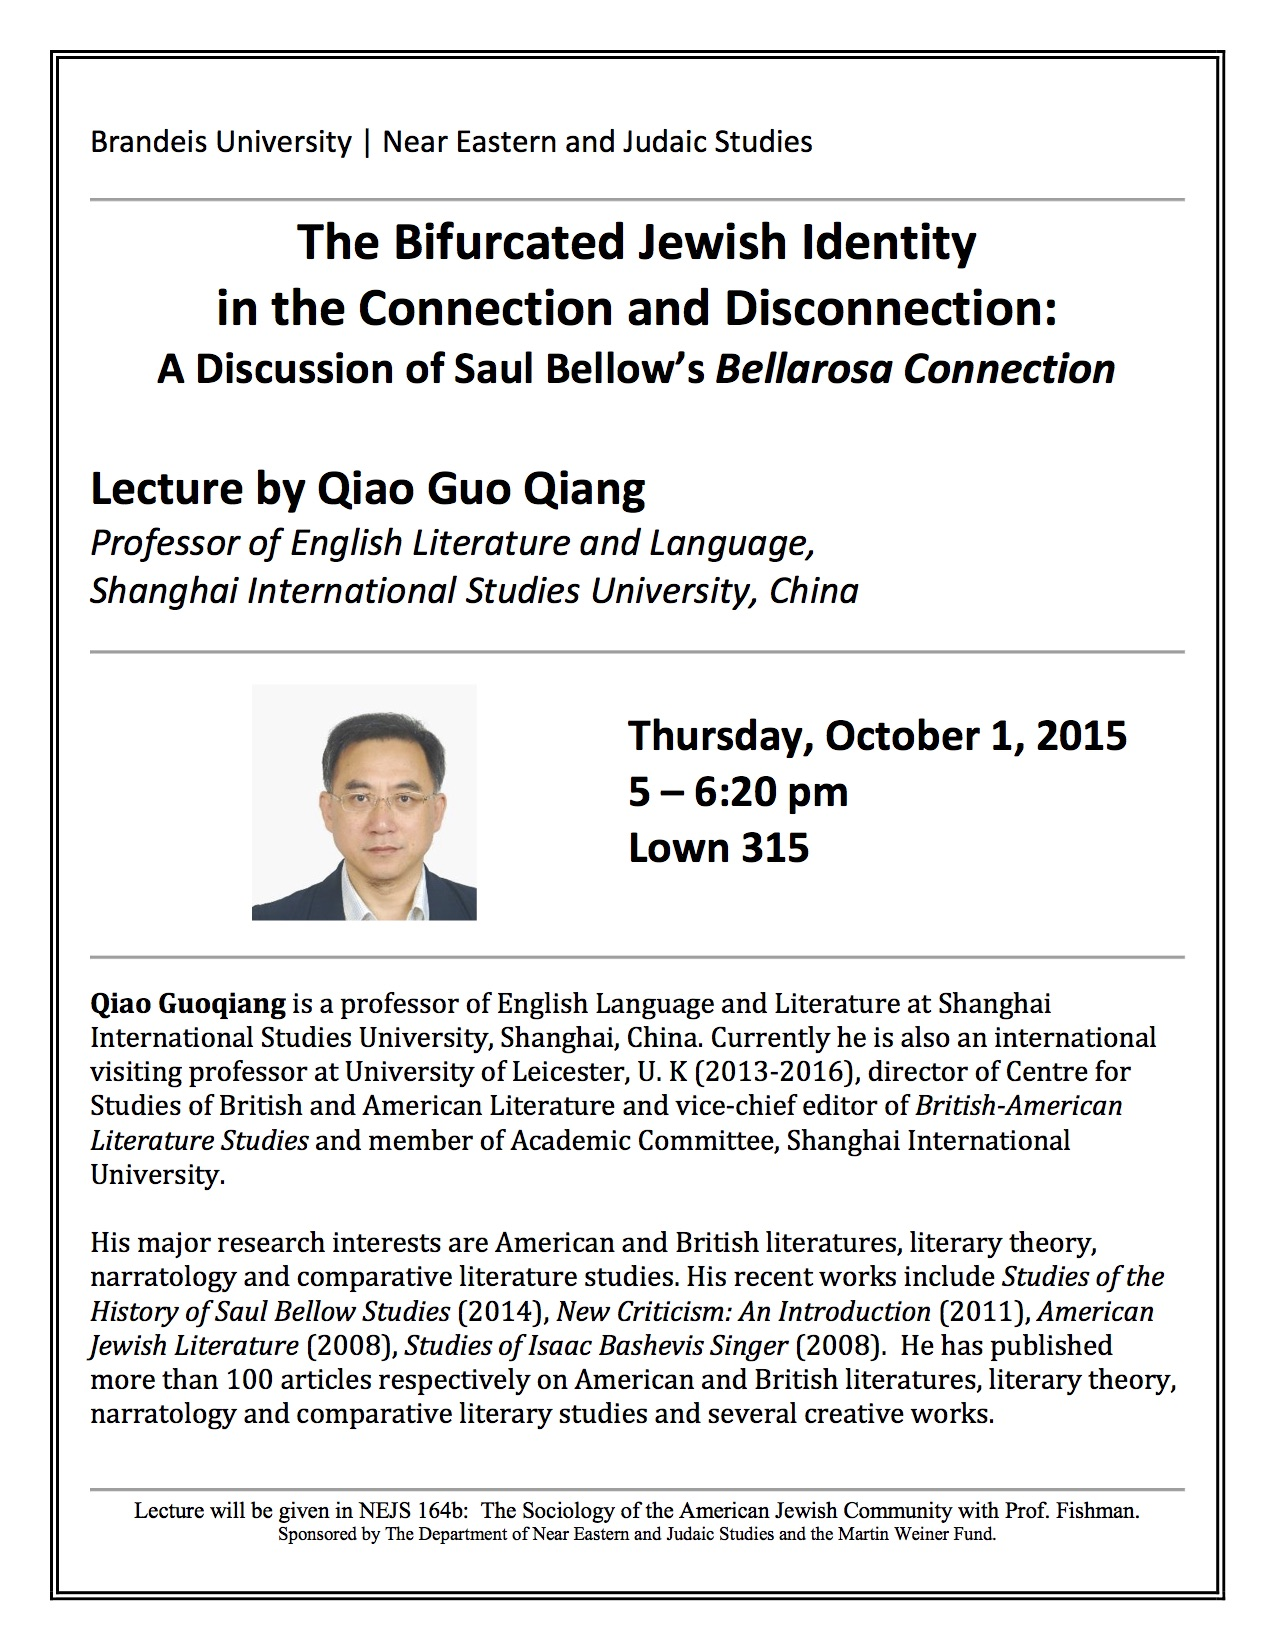 Qianglecture Poster